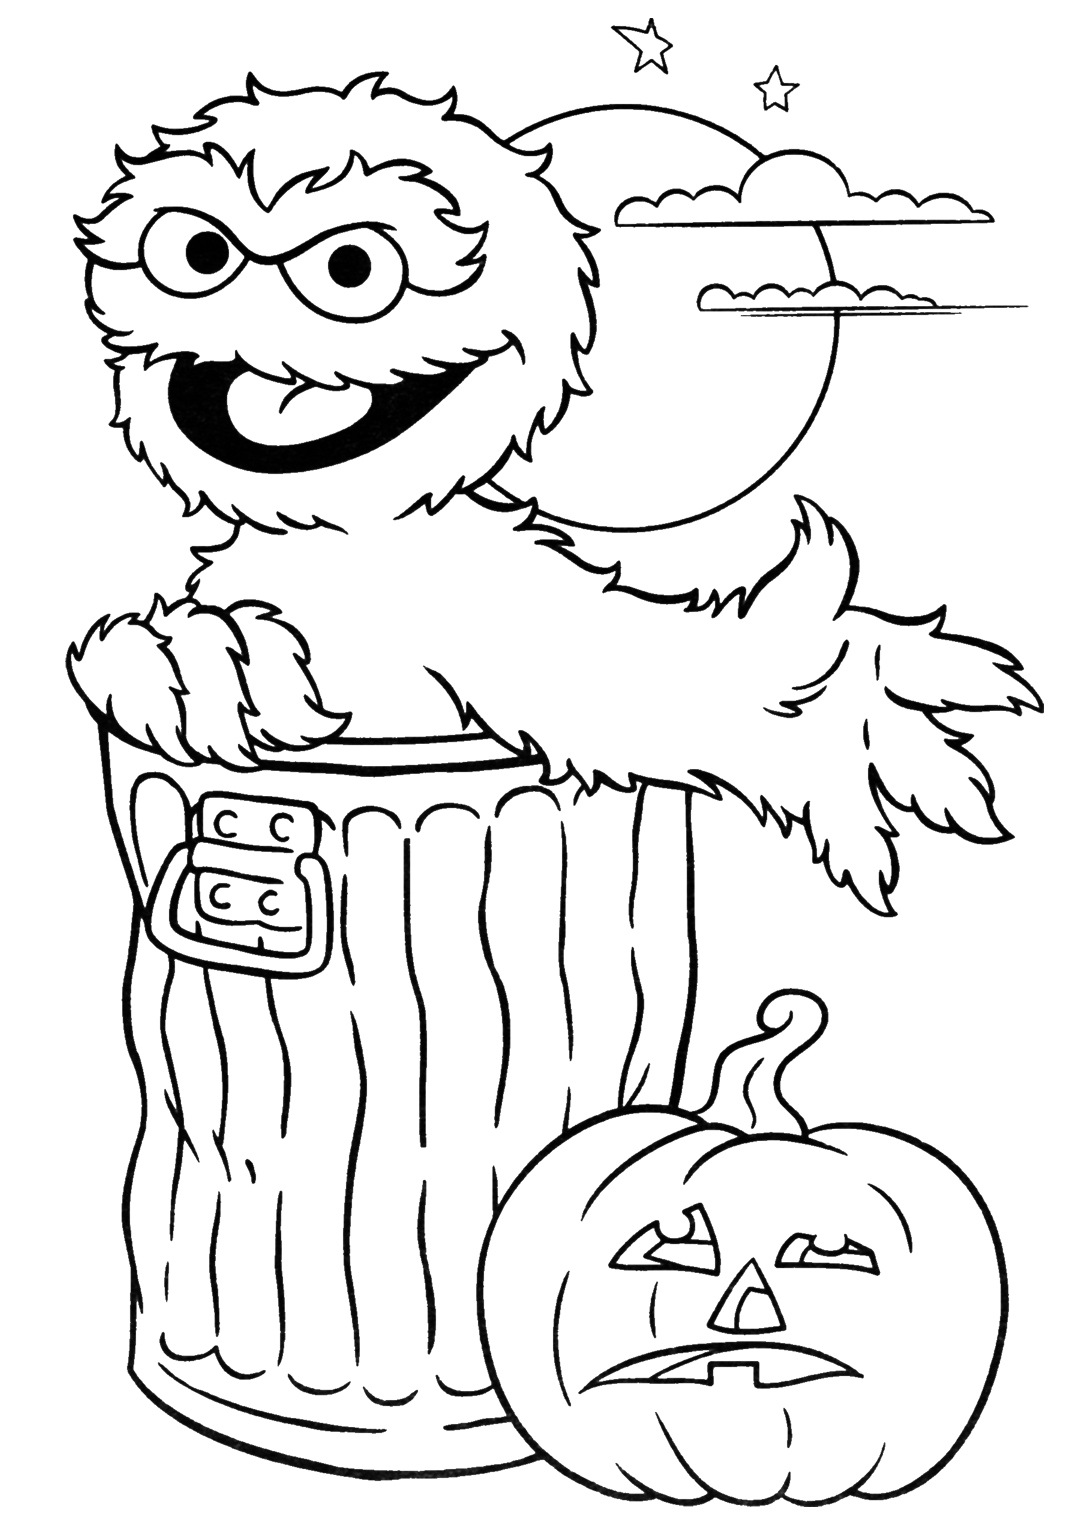 coloring sheets for halloween 24 free halloween coloring pages for kids honey lime for halloween sheets coloring